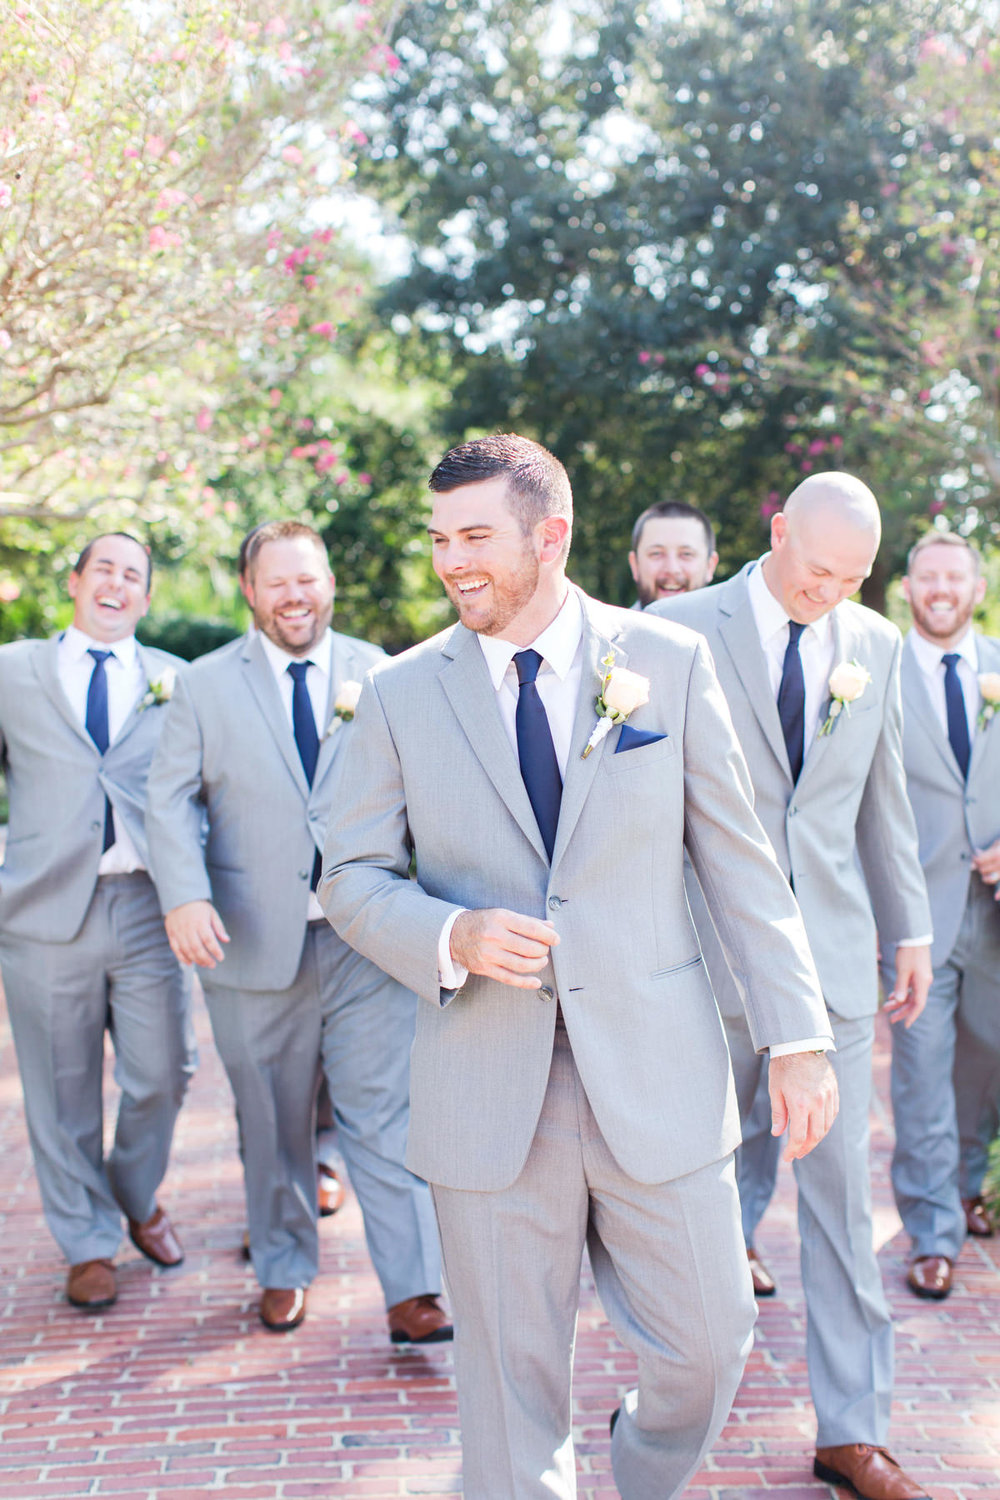 Groom Dan and Groomsmen.jpg